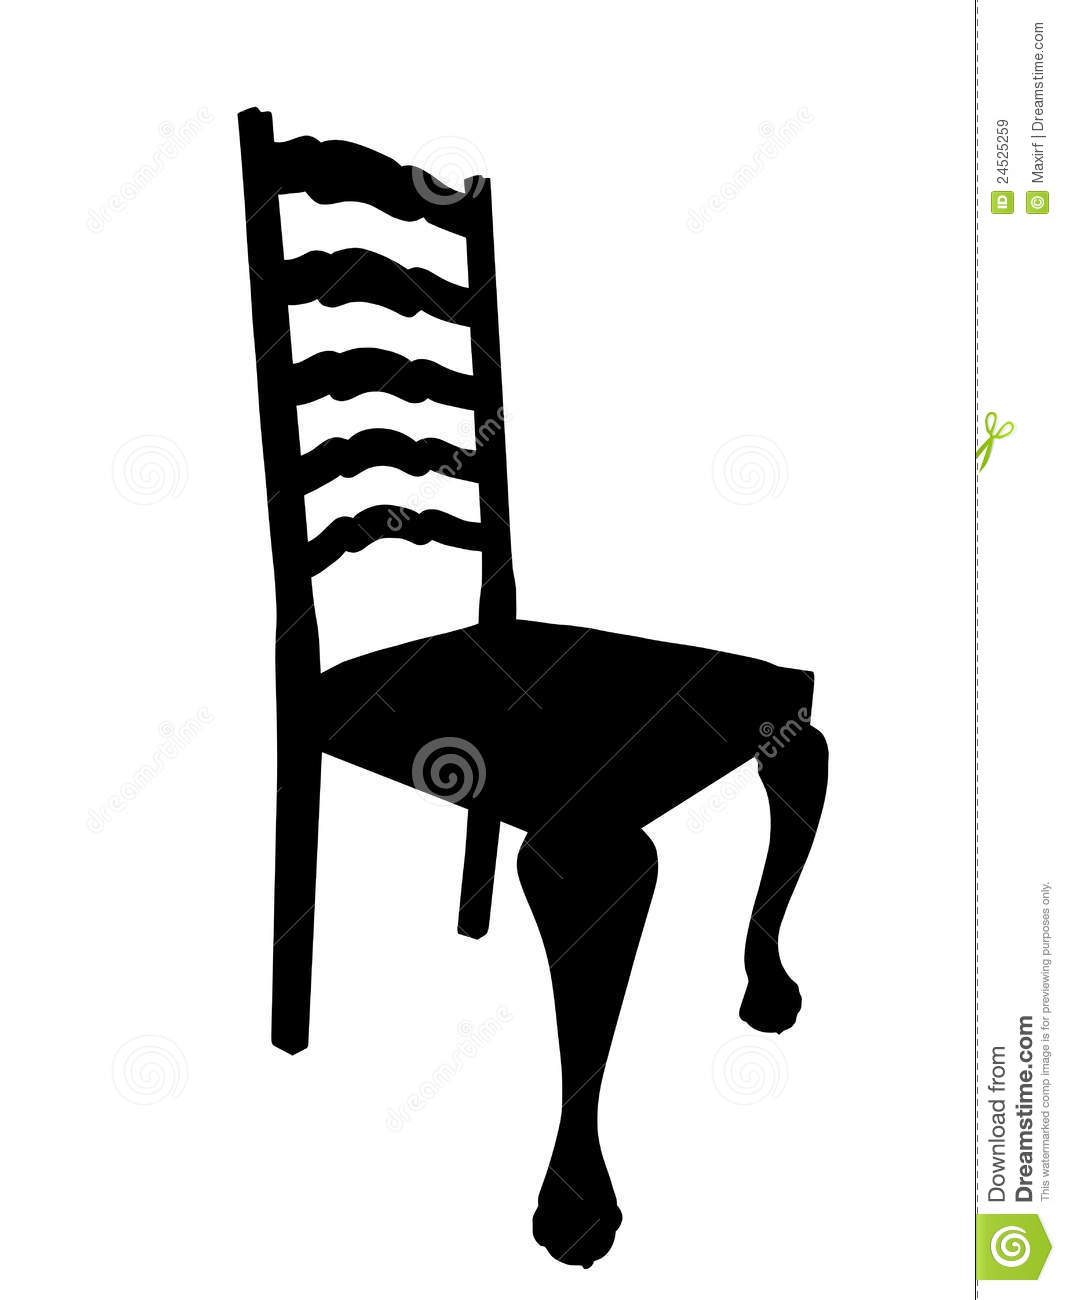 Antique Dining Table Chair Silhouette Isolation Stock  : antique dining table chair silhouette isolation 24525259 from www.dreamstime.com size 1065 x 1300 jpeg 59kB